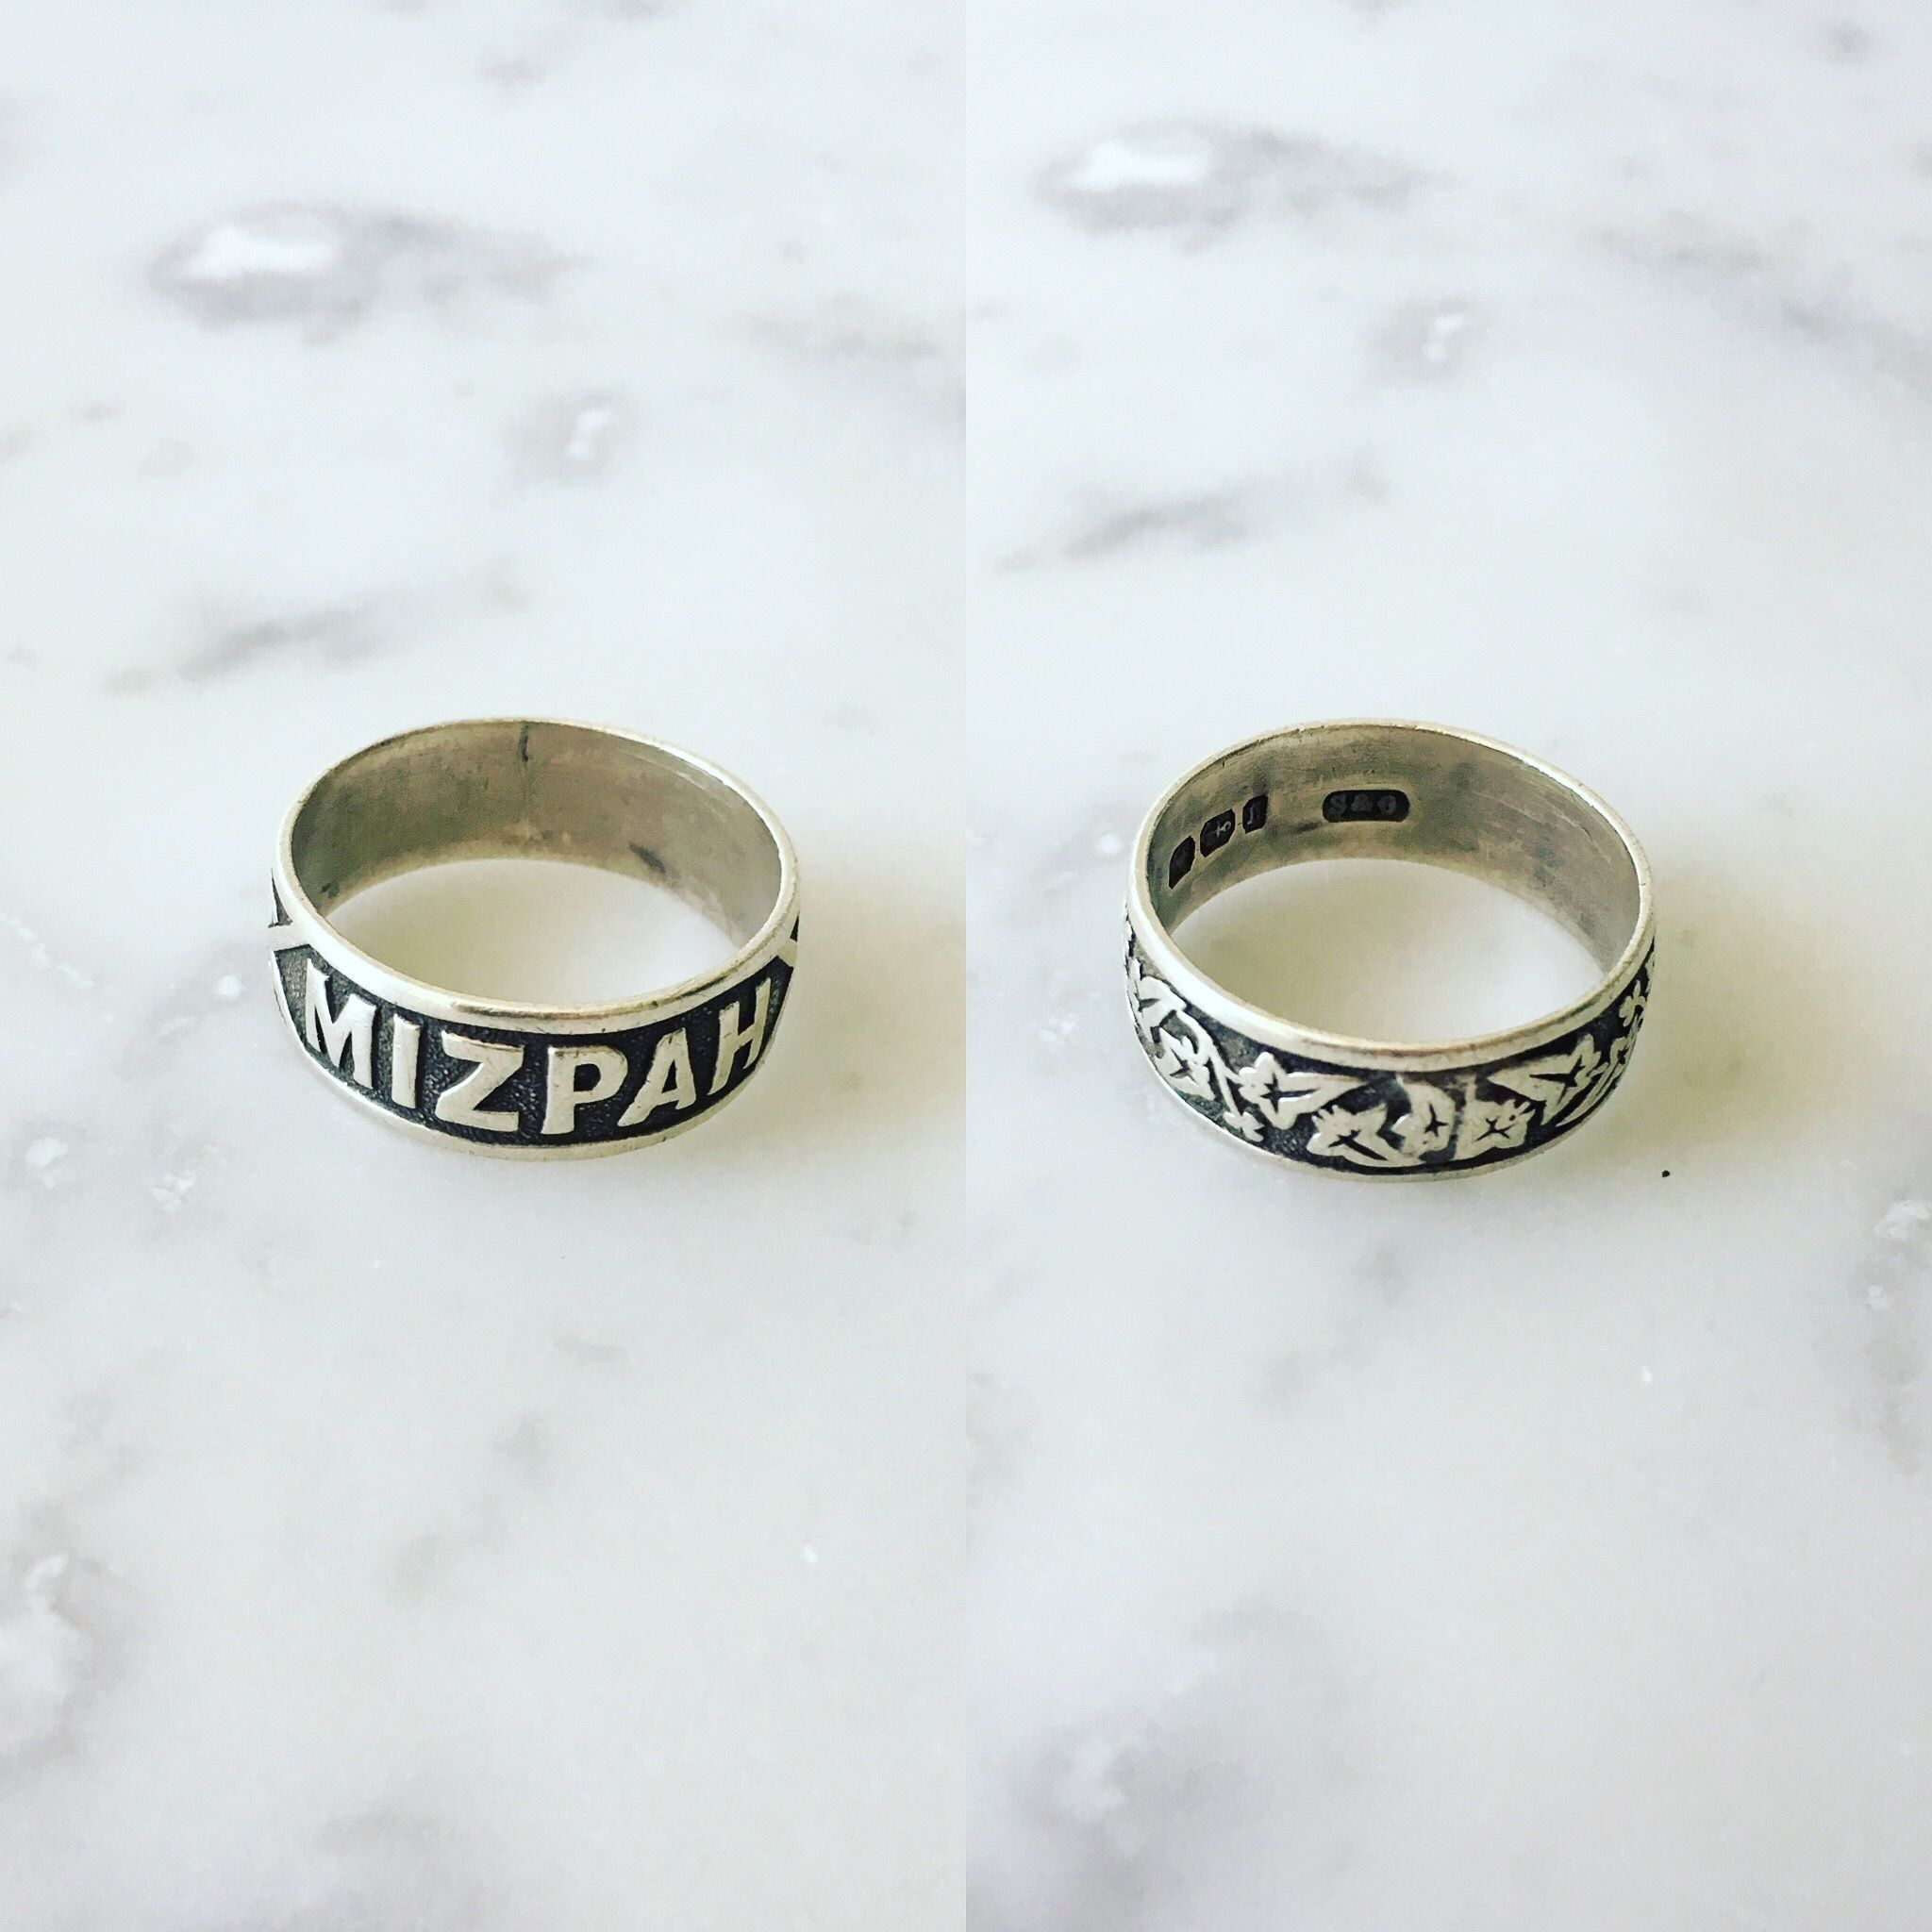 Victorian mizpah god protect thee and me ring ivy leaves victorian mizpah god protect thee and me ring ivy leaves symbolize fidelity biocorpaavc Gallery